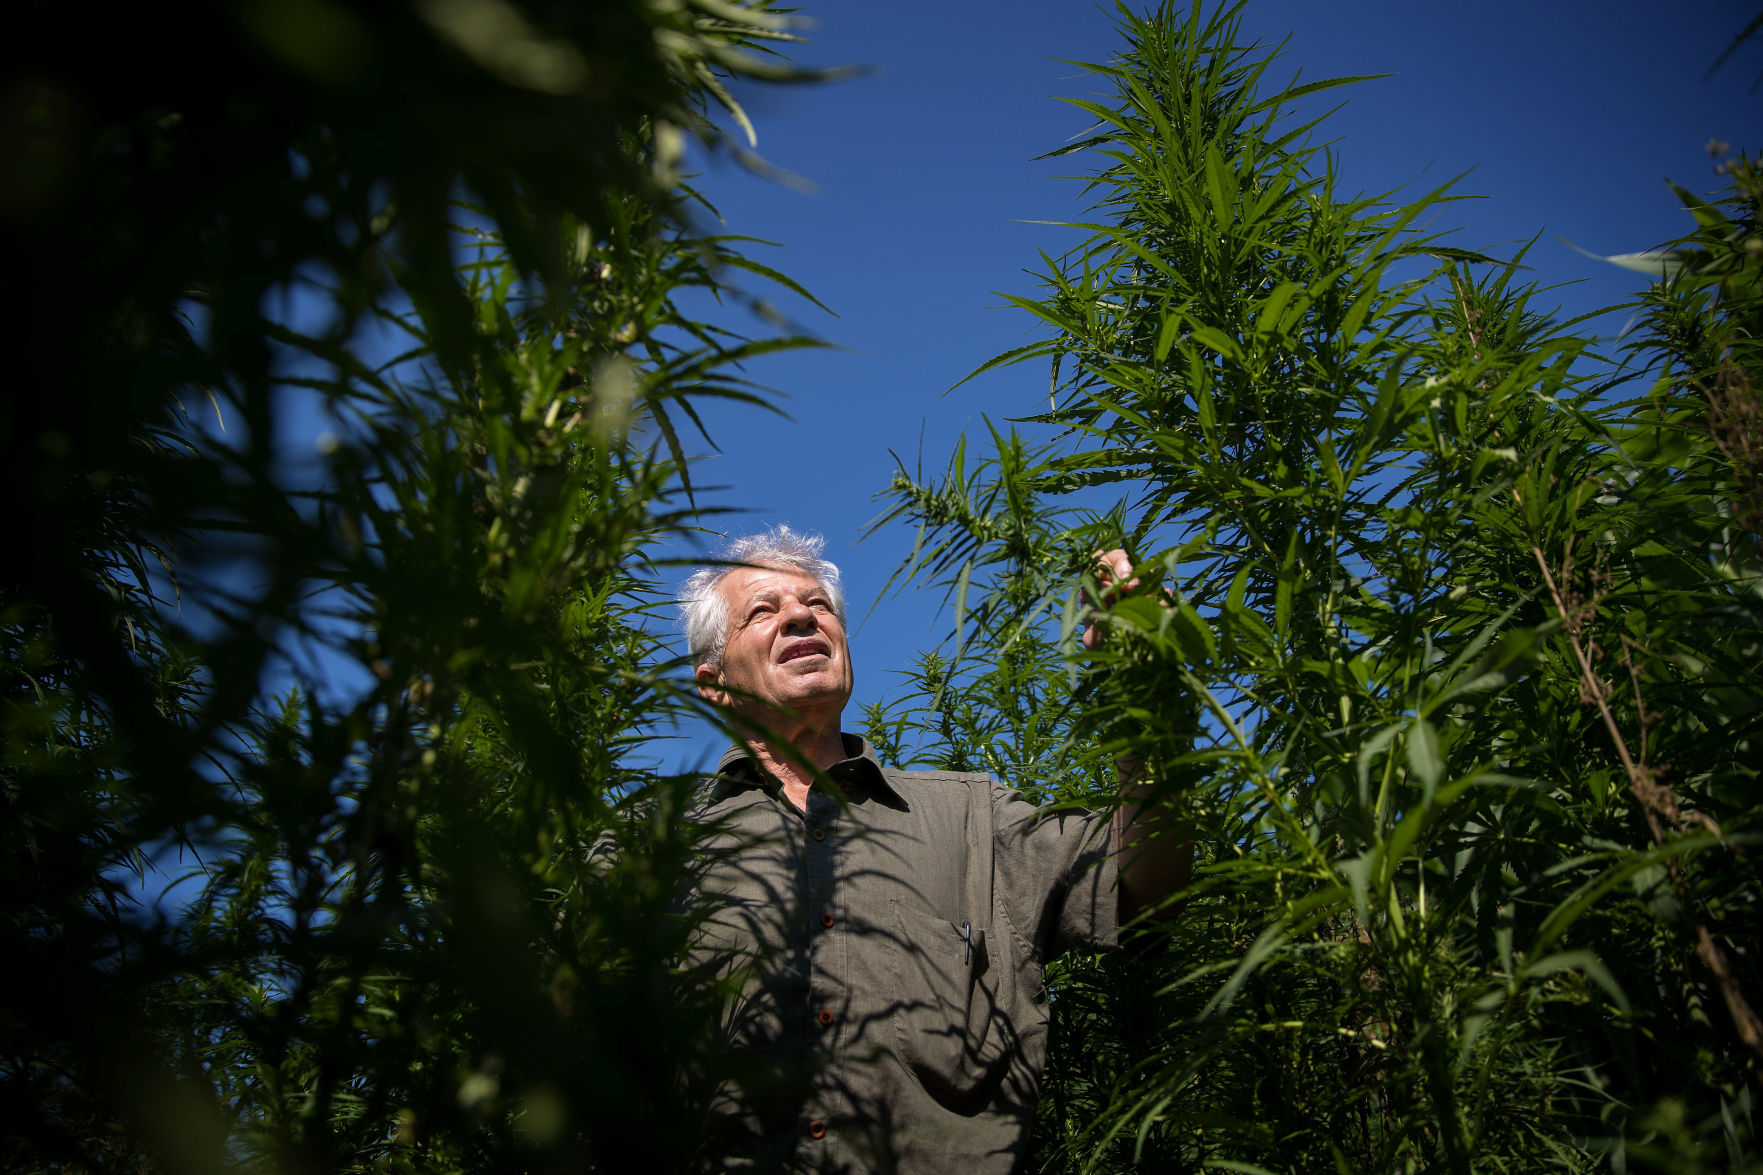 UNL's Research into Industrial Hemp has Already Yielded Some Key Information